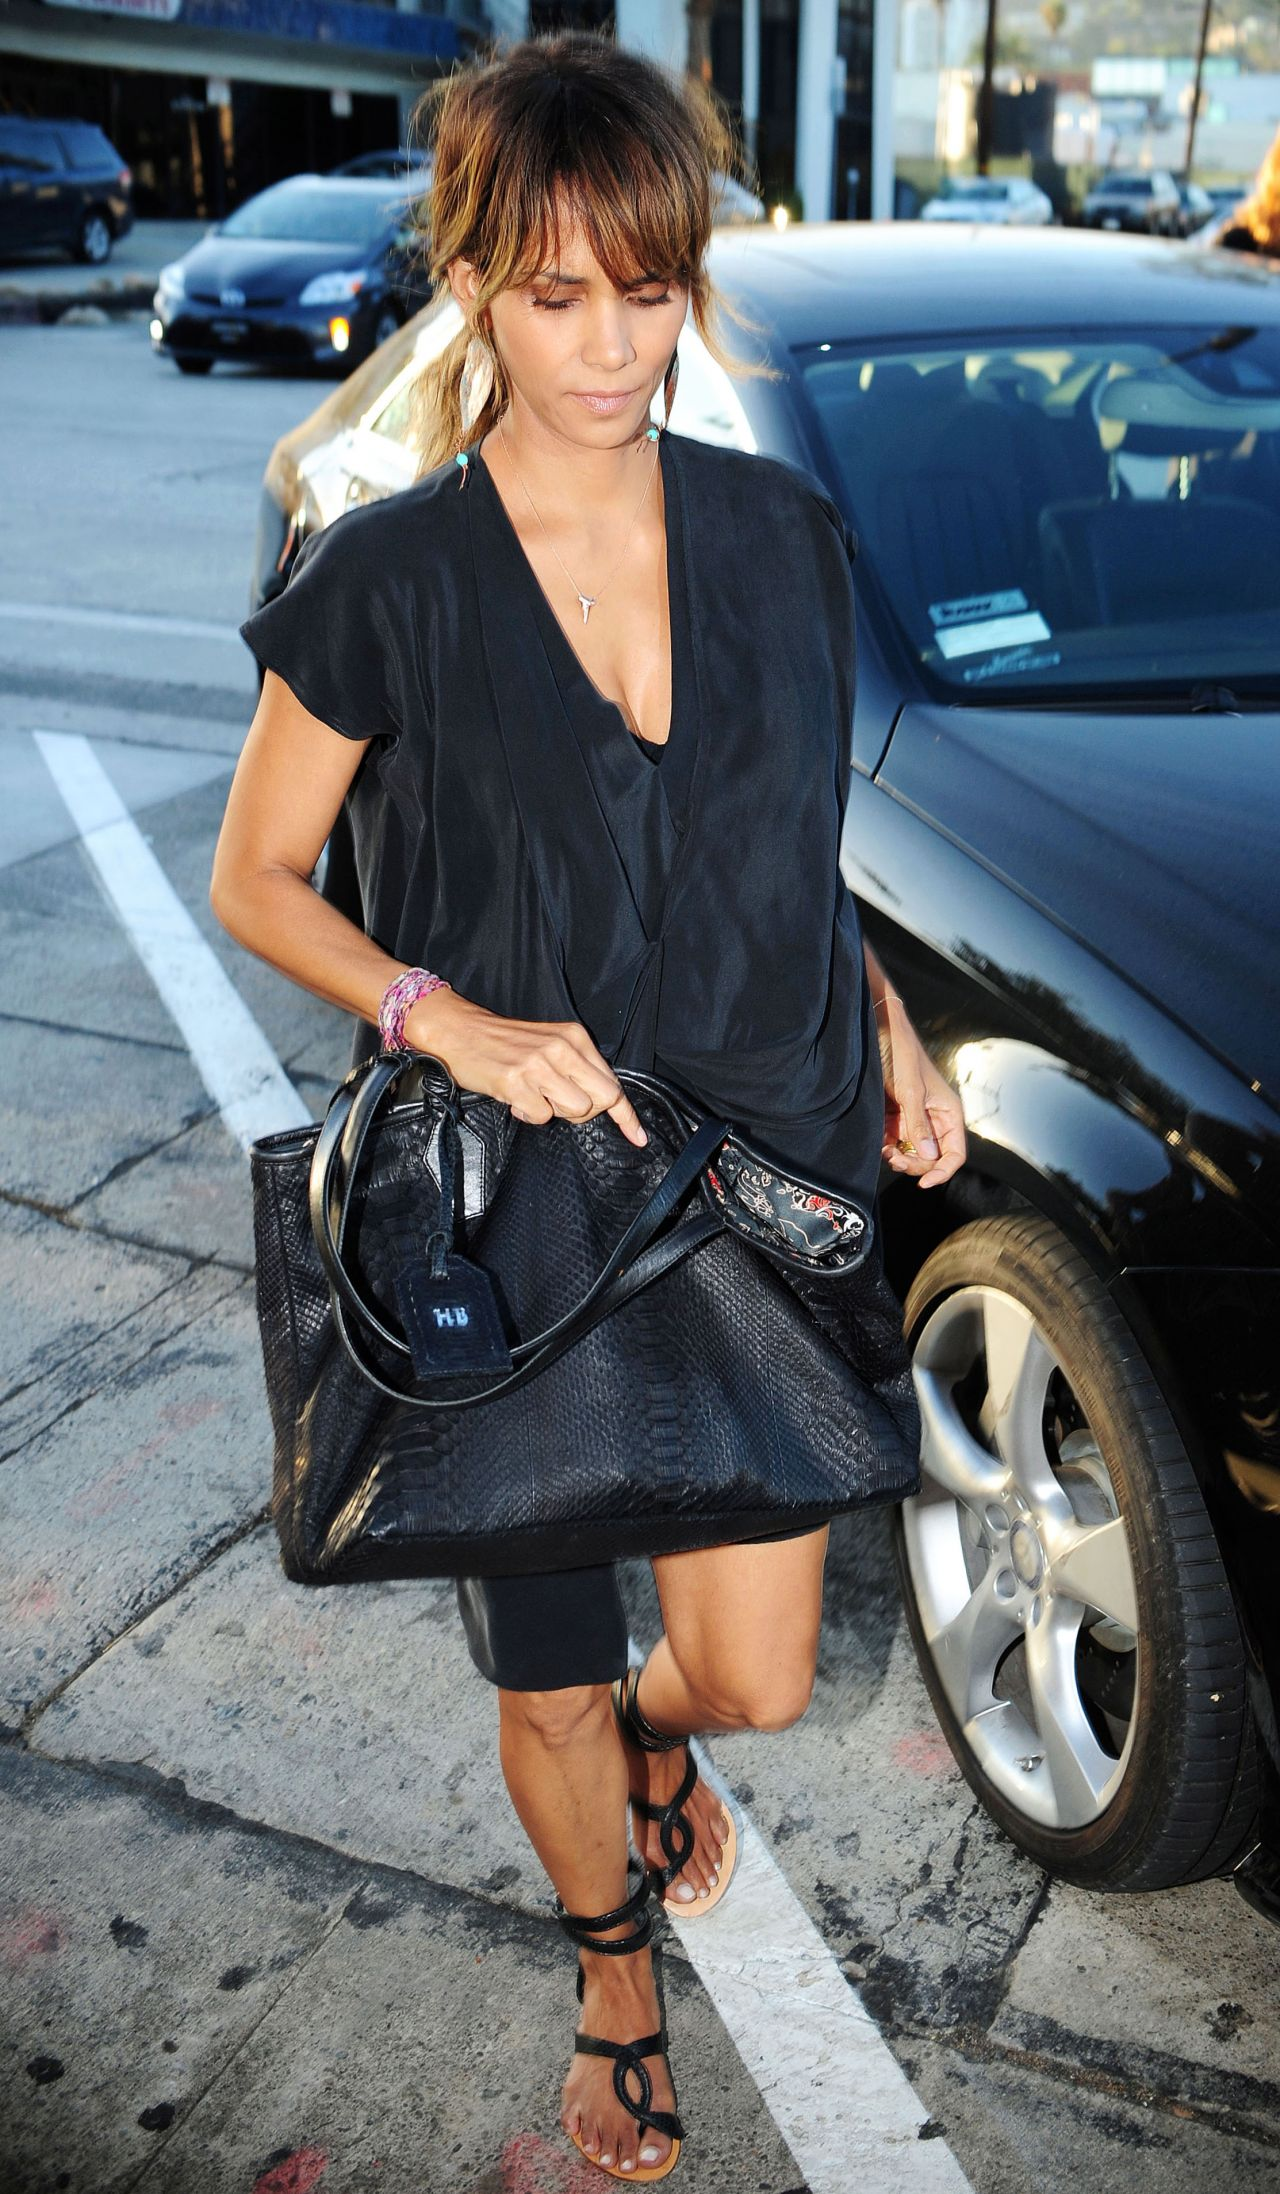 Halle Berry Craig S Restaurant In West Hollywood August